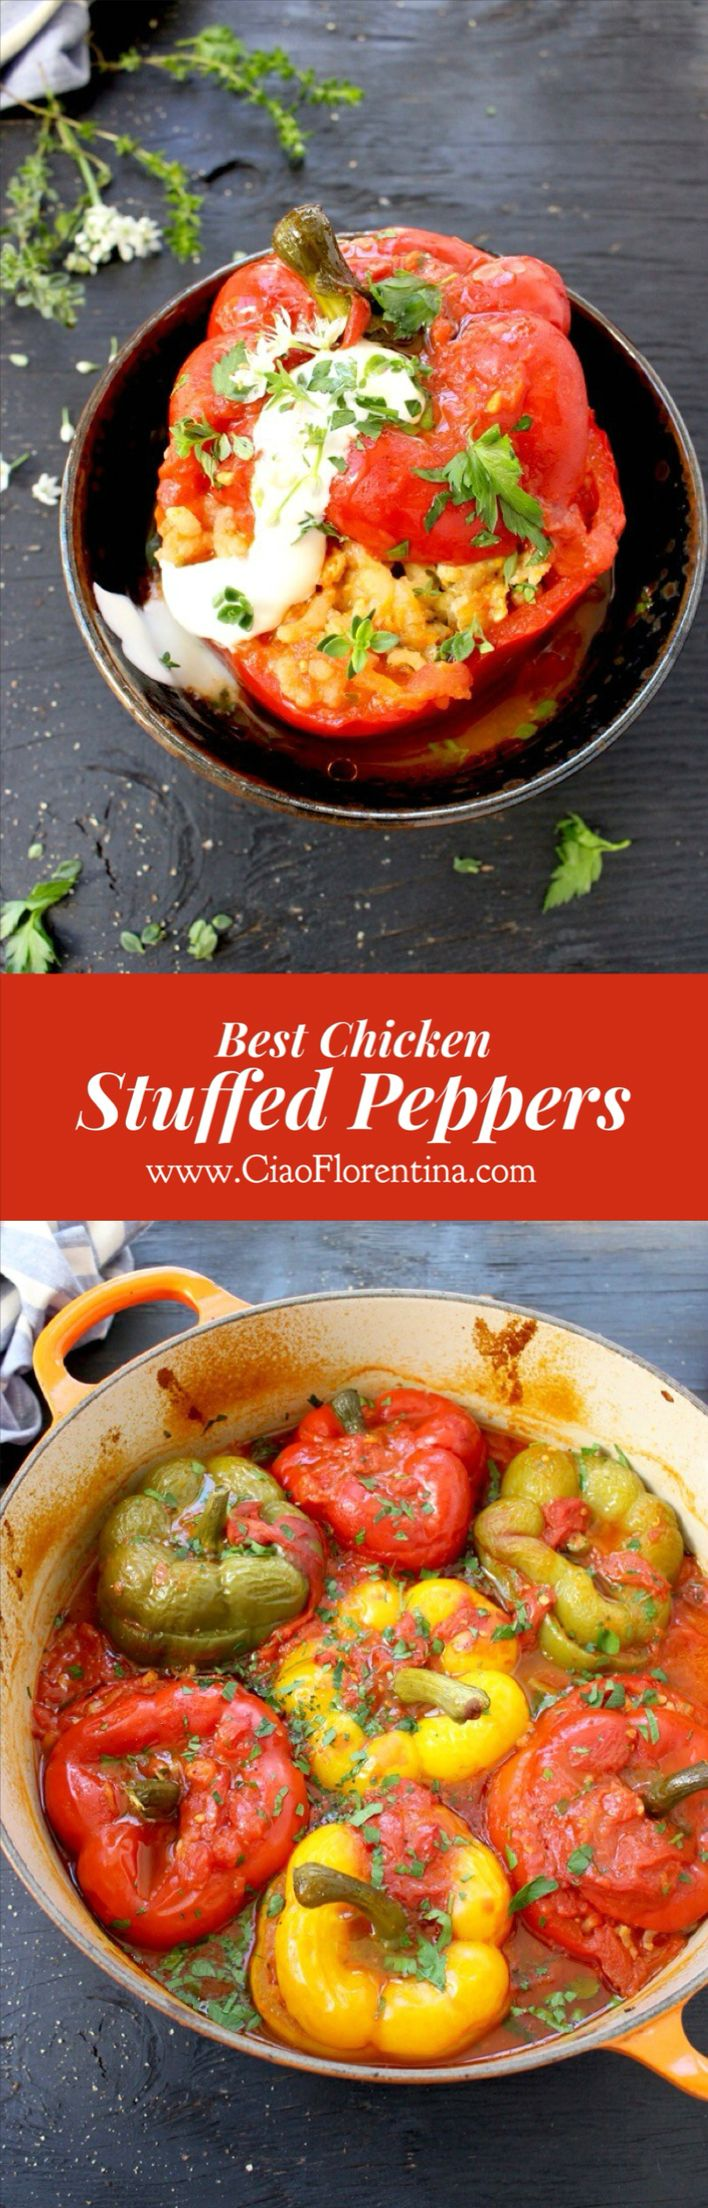 Best Stuffed Peppers Recipe ( Easy) with Chicken and Risotto Rice | CiaoFlorentina.com @CiaoFlorentina